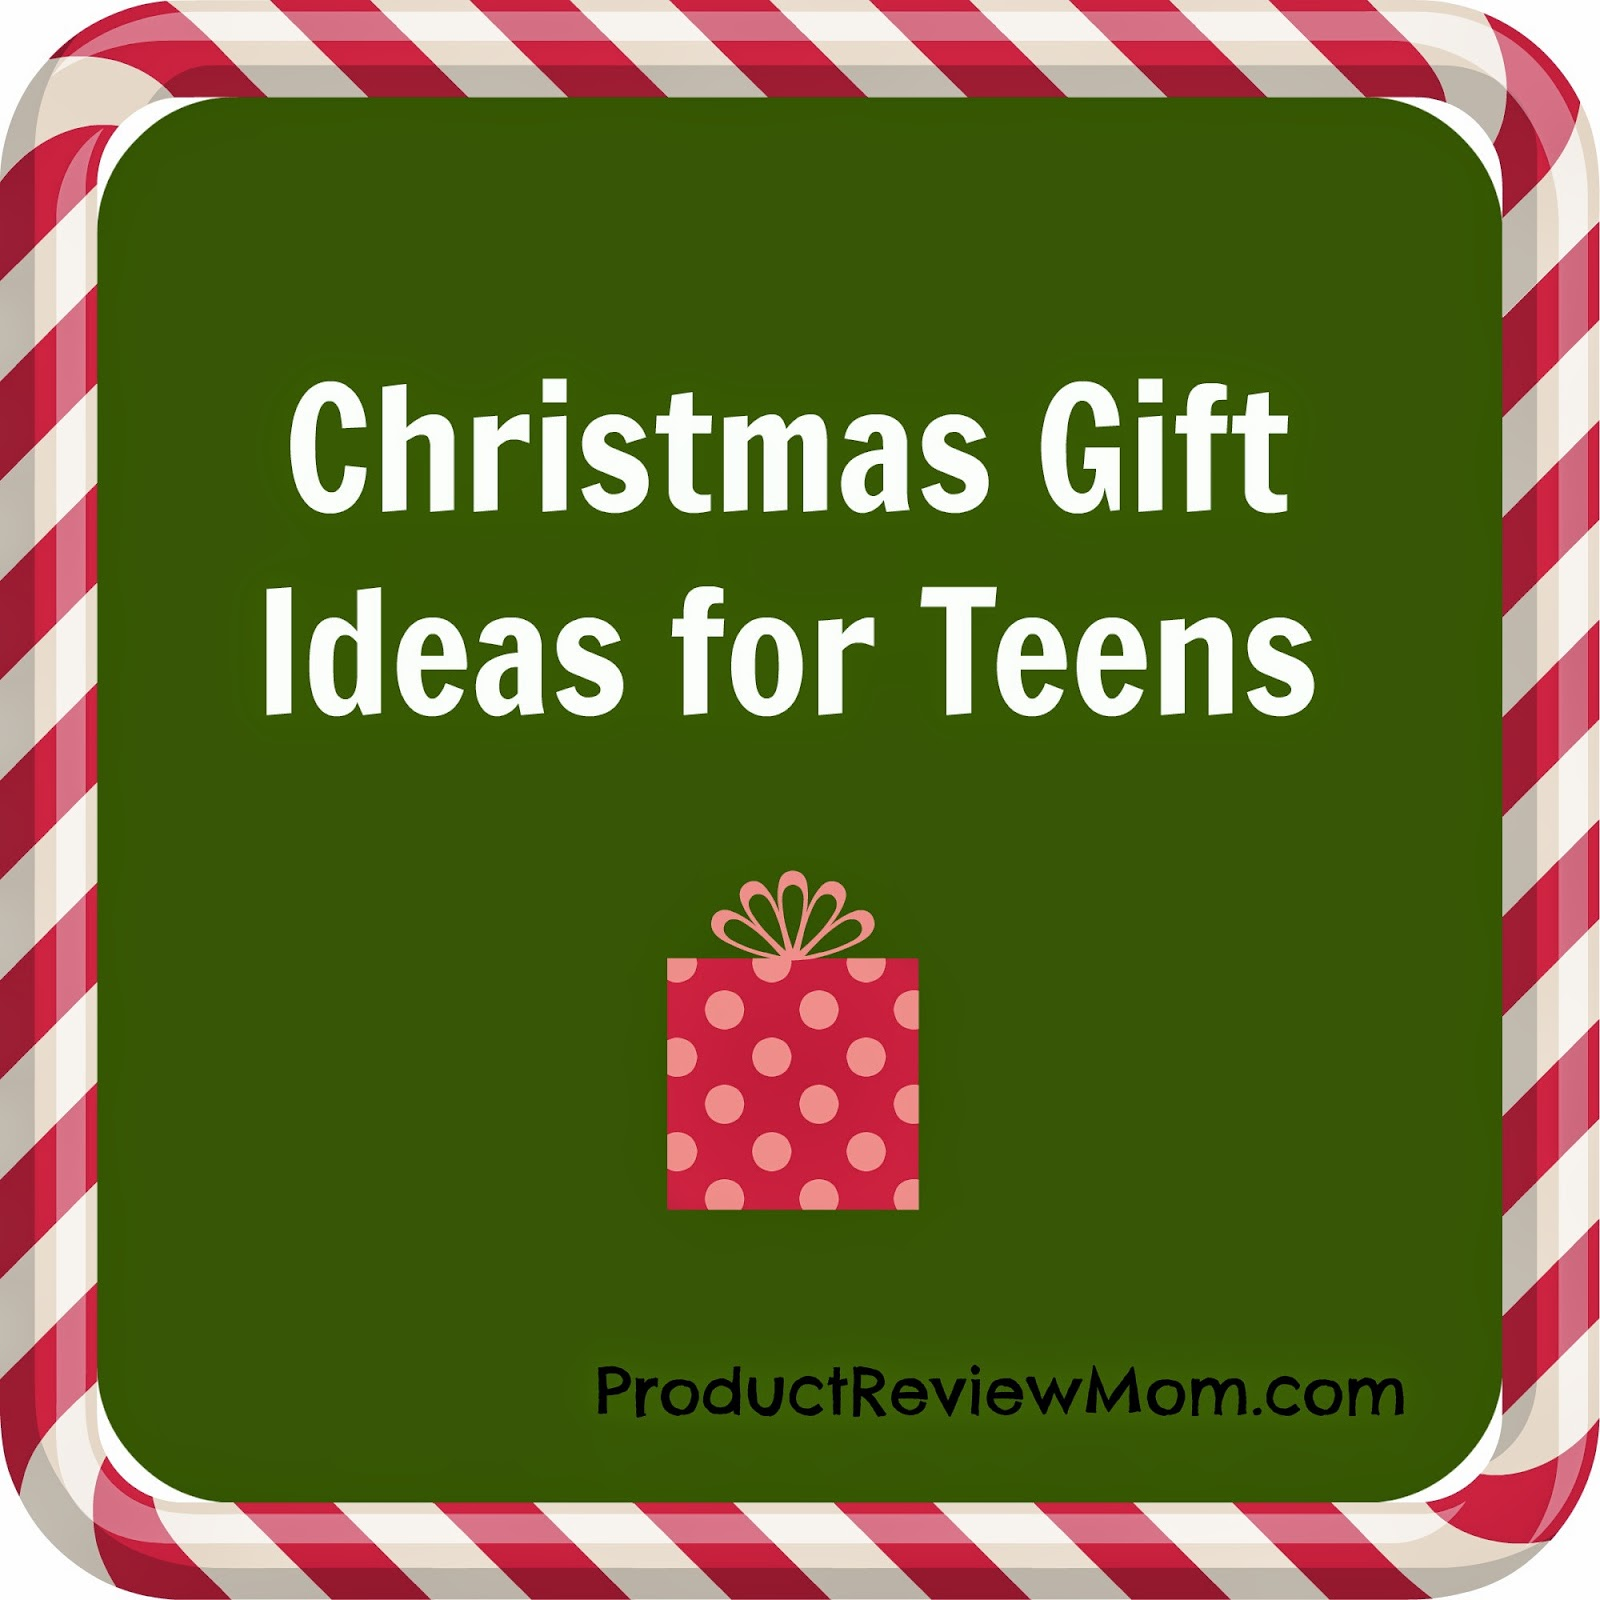 Christmas Gift Ideas for Teens #HolidayGiftGuide via www.Productreviewmom.com